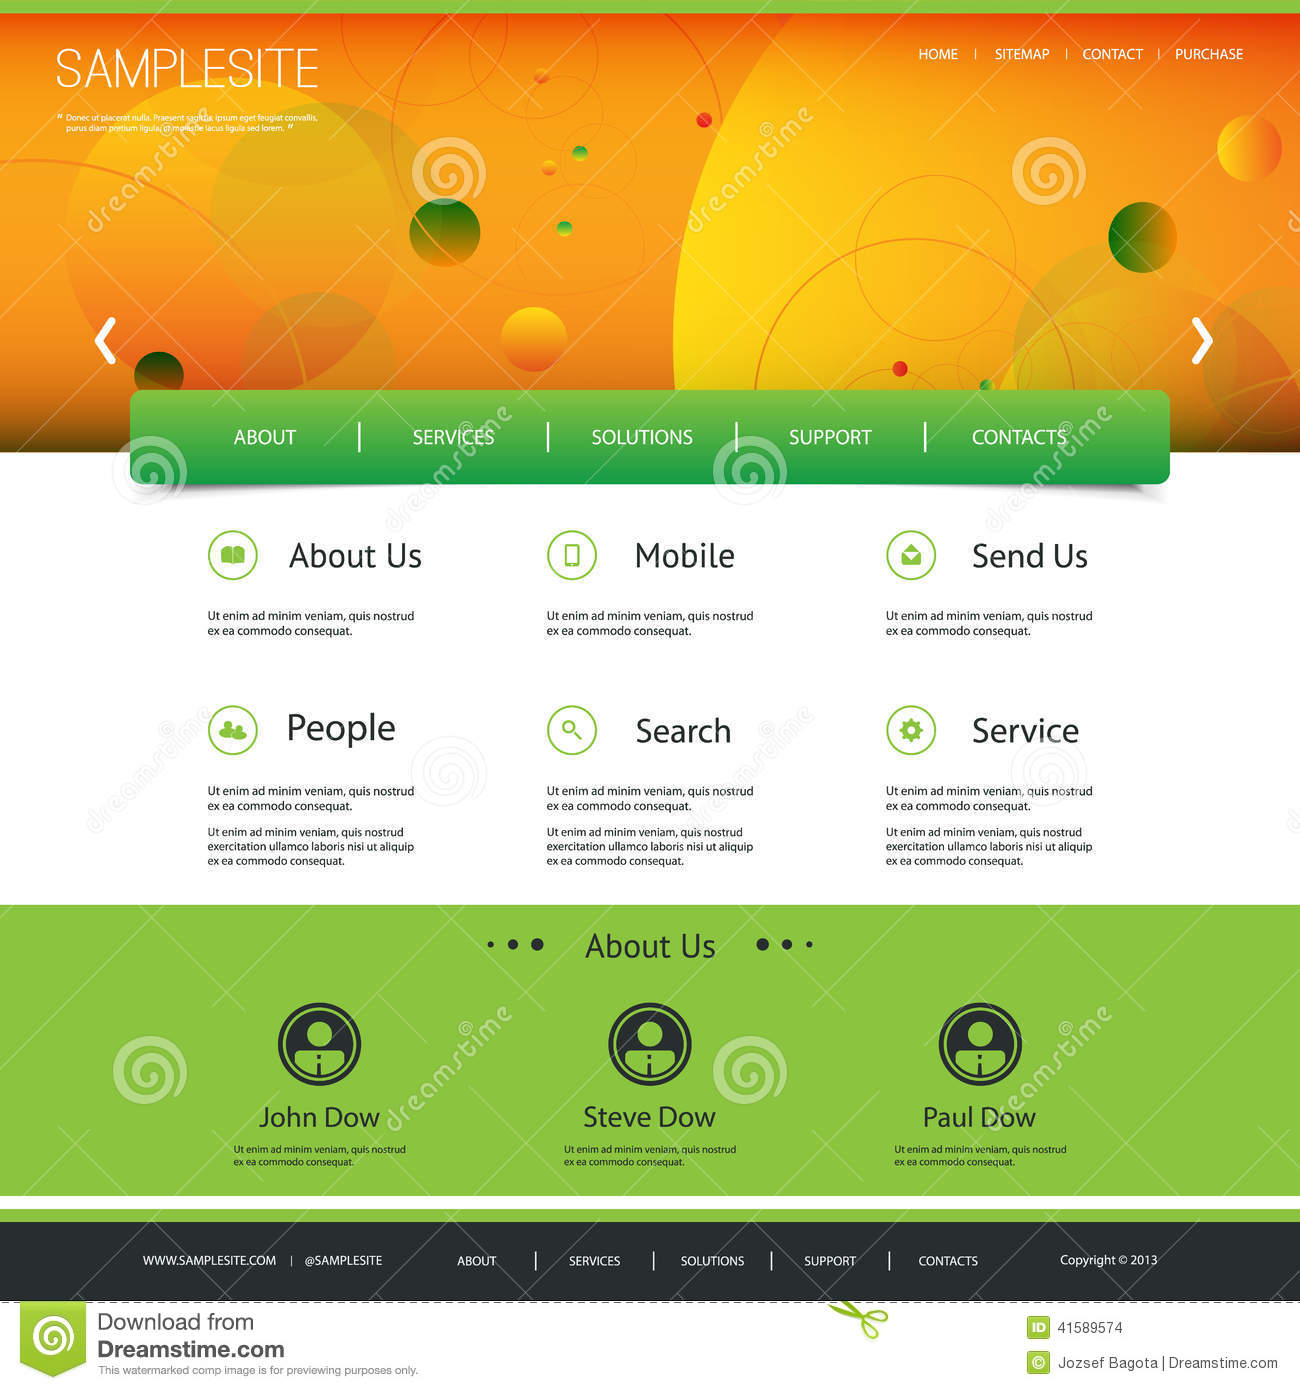 Website Template Design With Abstract Orange Header Stock. Laser Hair Removal Chandler Home Drug Detox. Technology Schools Online File Copy Software. How To Test For Peanut Allergy. Botox Lips Before And After Greater New York. Consumer Reports Best Car Insurance. Top Renewable Energy Companies. Credit Card Online Applications. Apply For A Visa Mastercard C Store Software